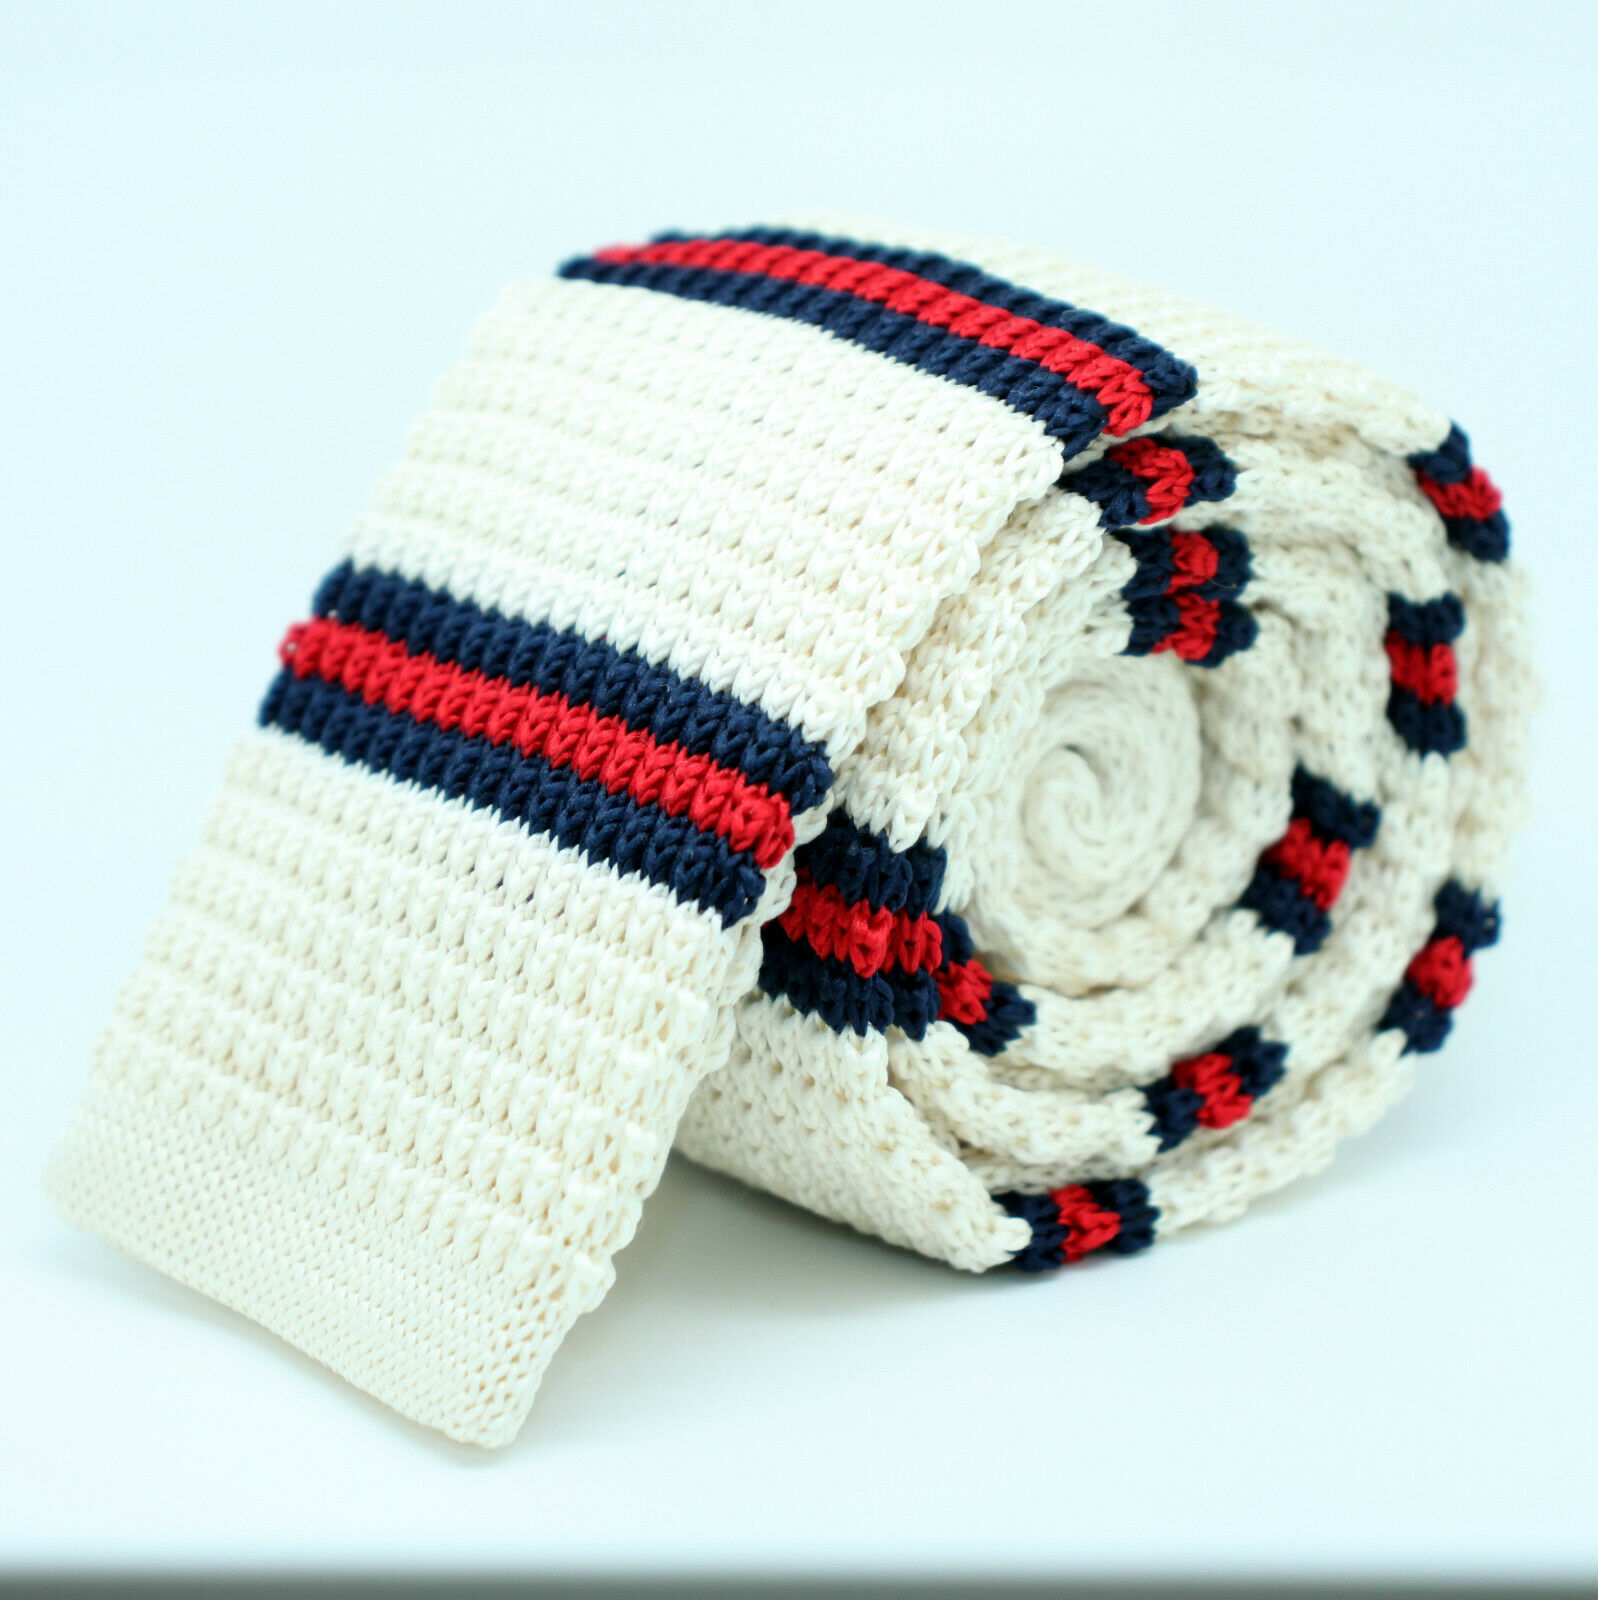 Beige Skinny Tie Blue Red Fabric Weave Knitted Handmade Straight End 5.5cm